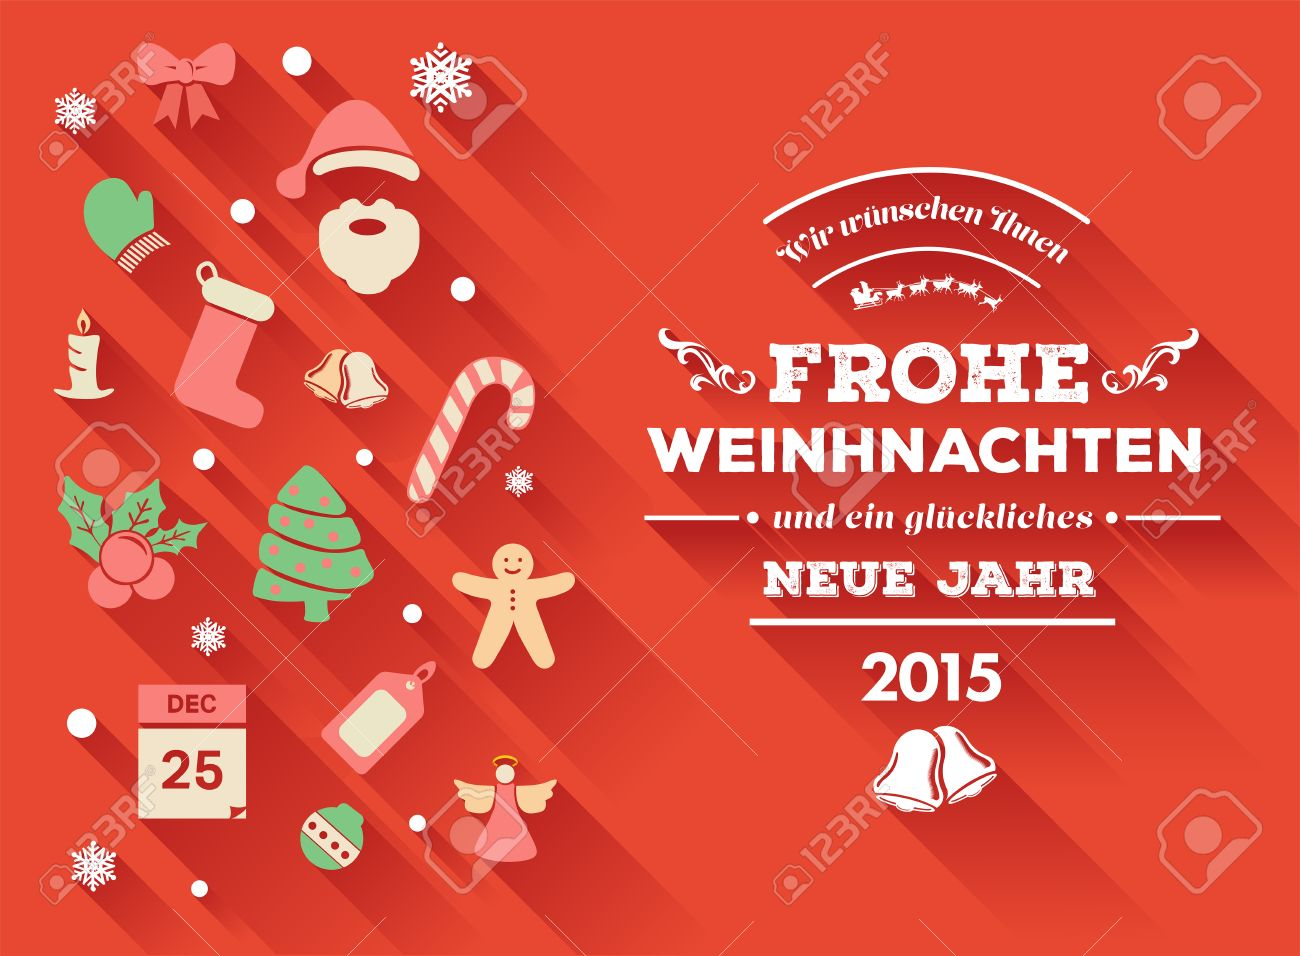 Digitally Generated Frohe Weihnachten Message With Christmas ...